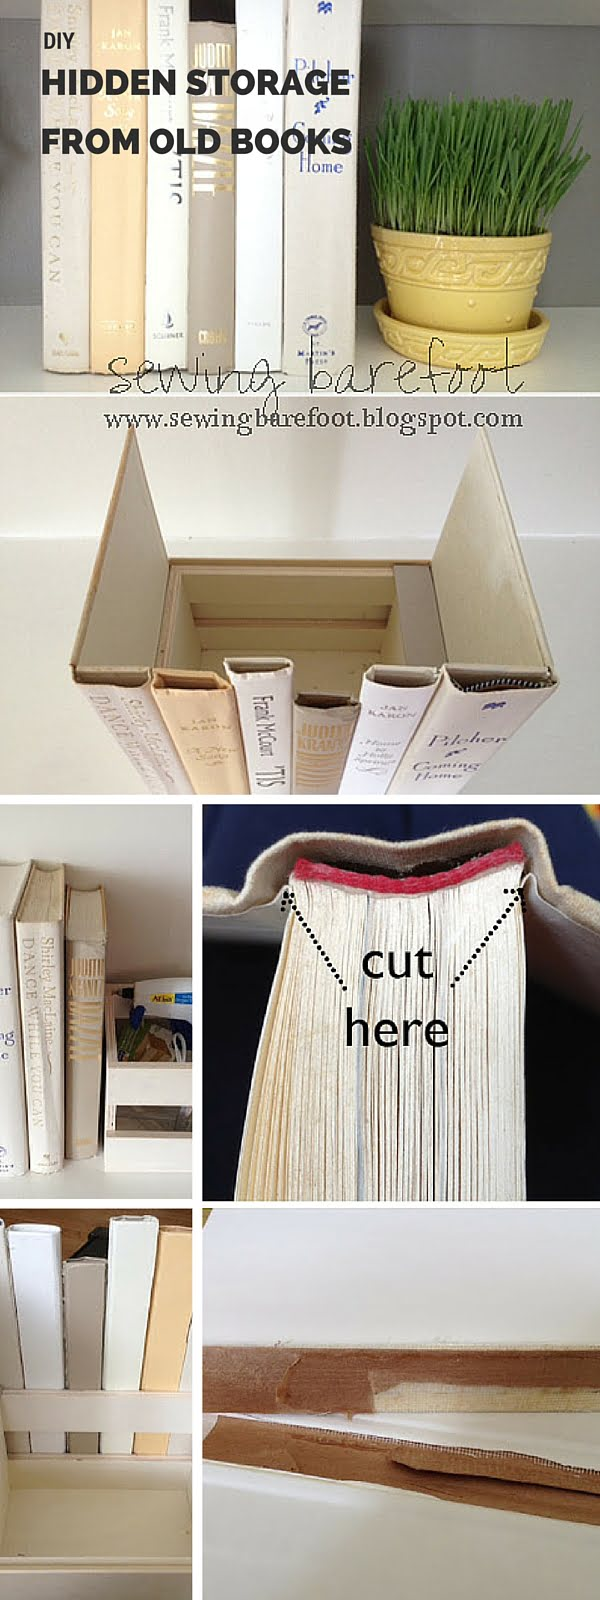 Check out the tutorial: #DIY Hidden Storage from Old Books #crafts #homedecor